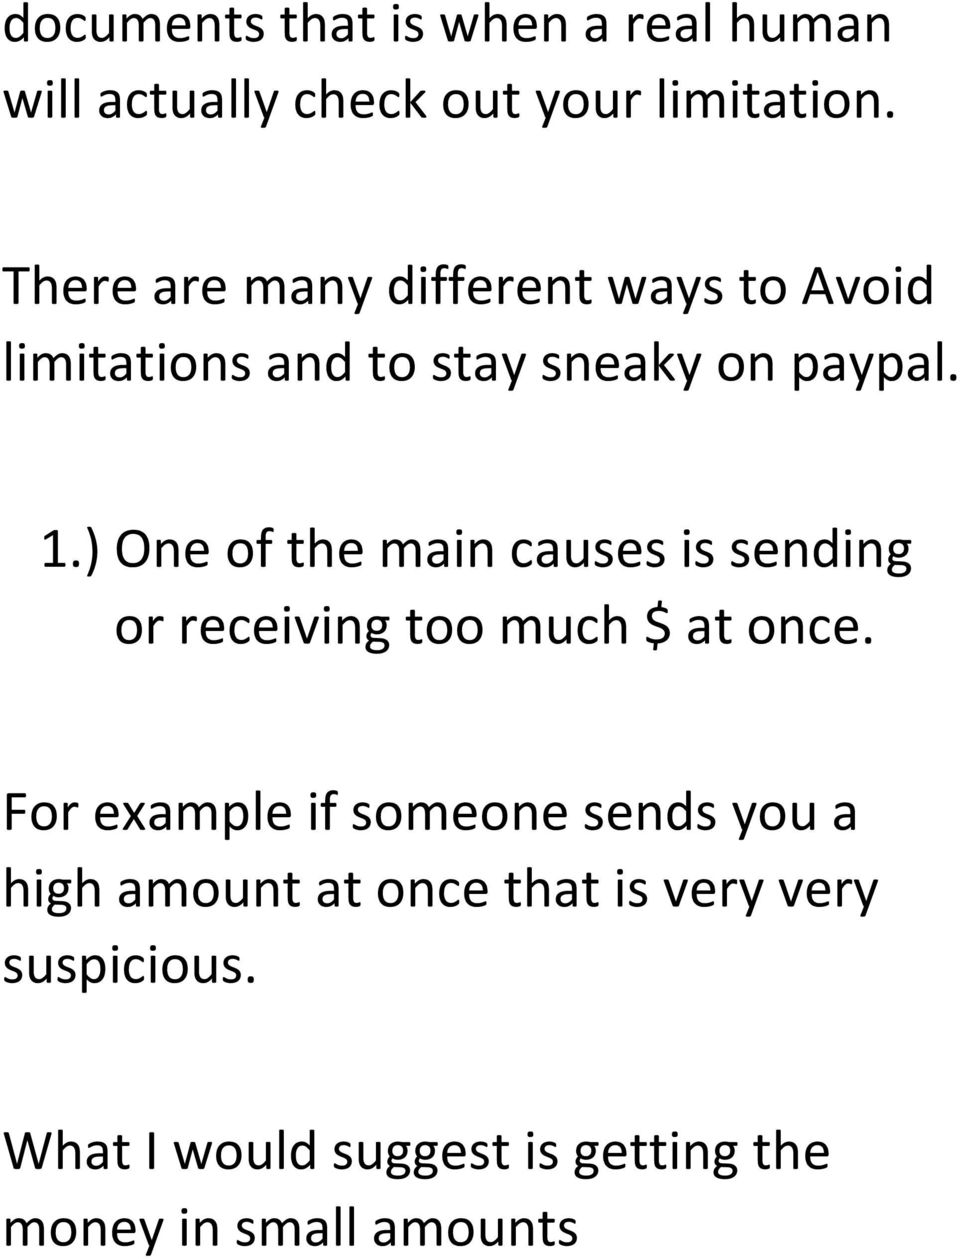 ) One of the main causes is sending or receiving too much $ at once.